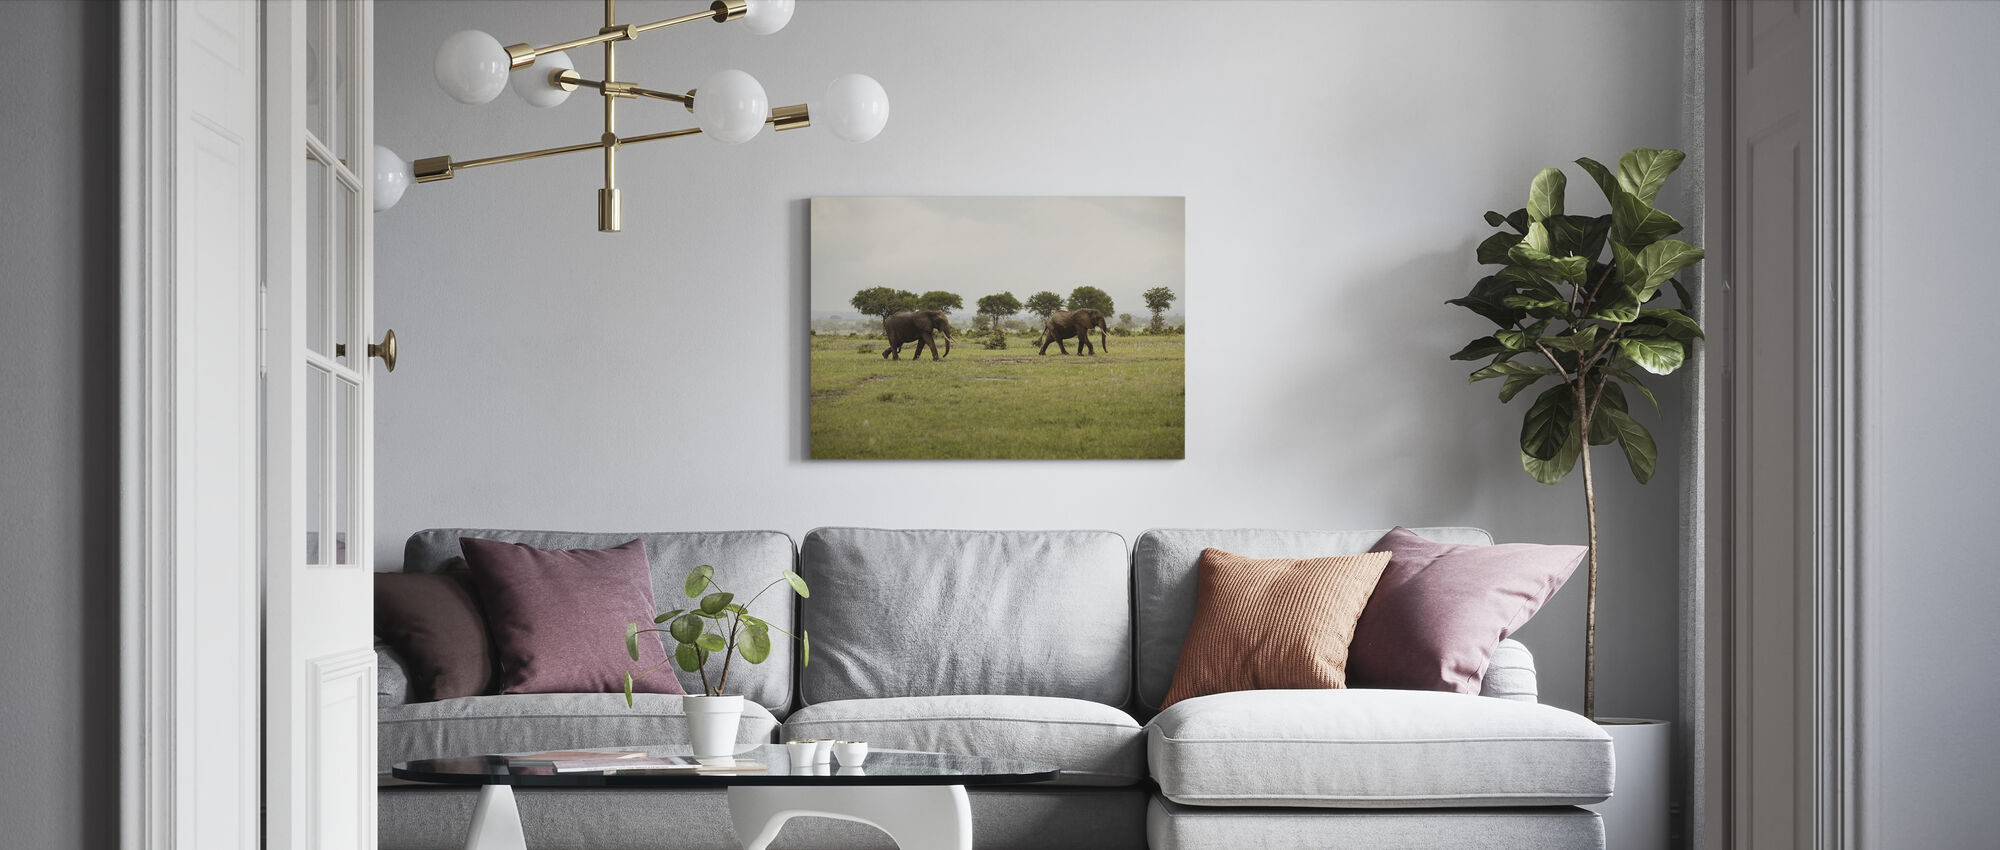 Elephants in National Park - Canvas print - Living Room